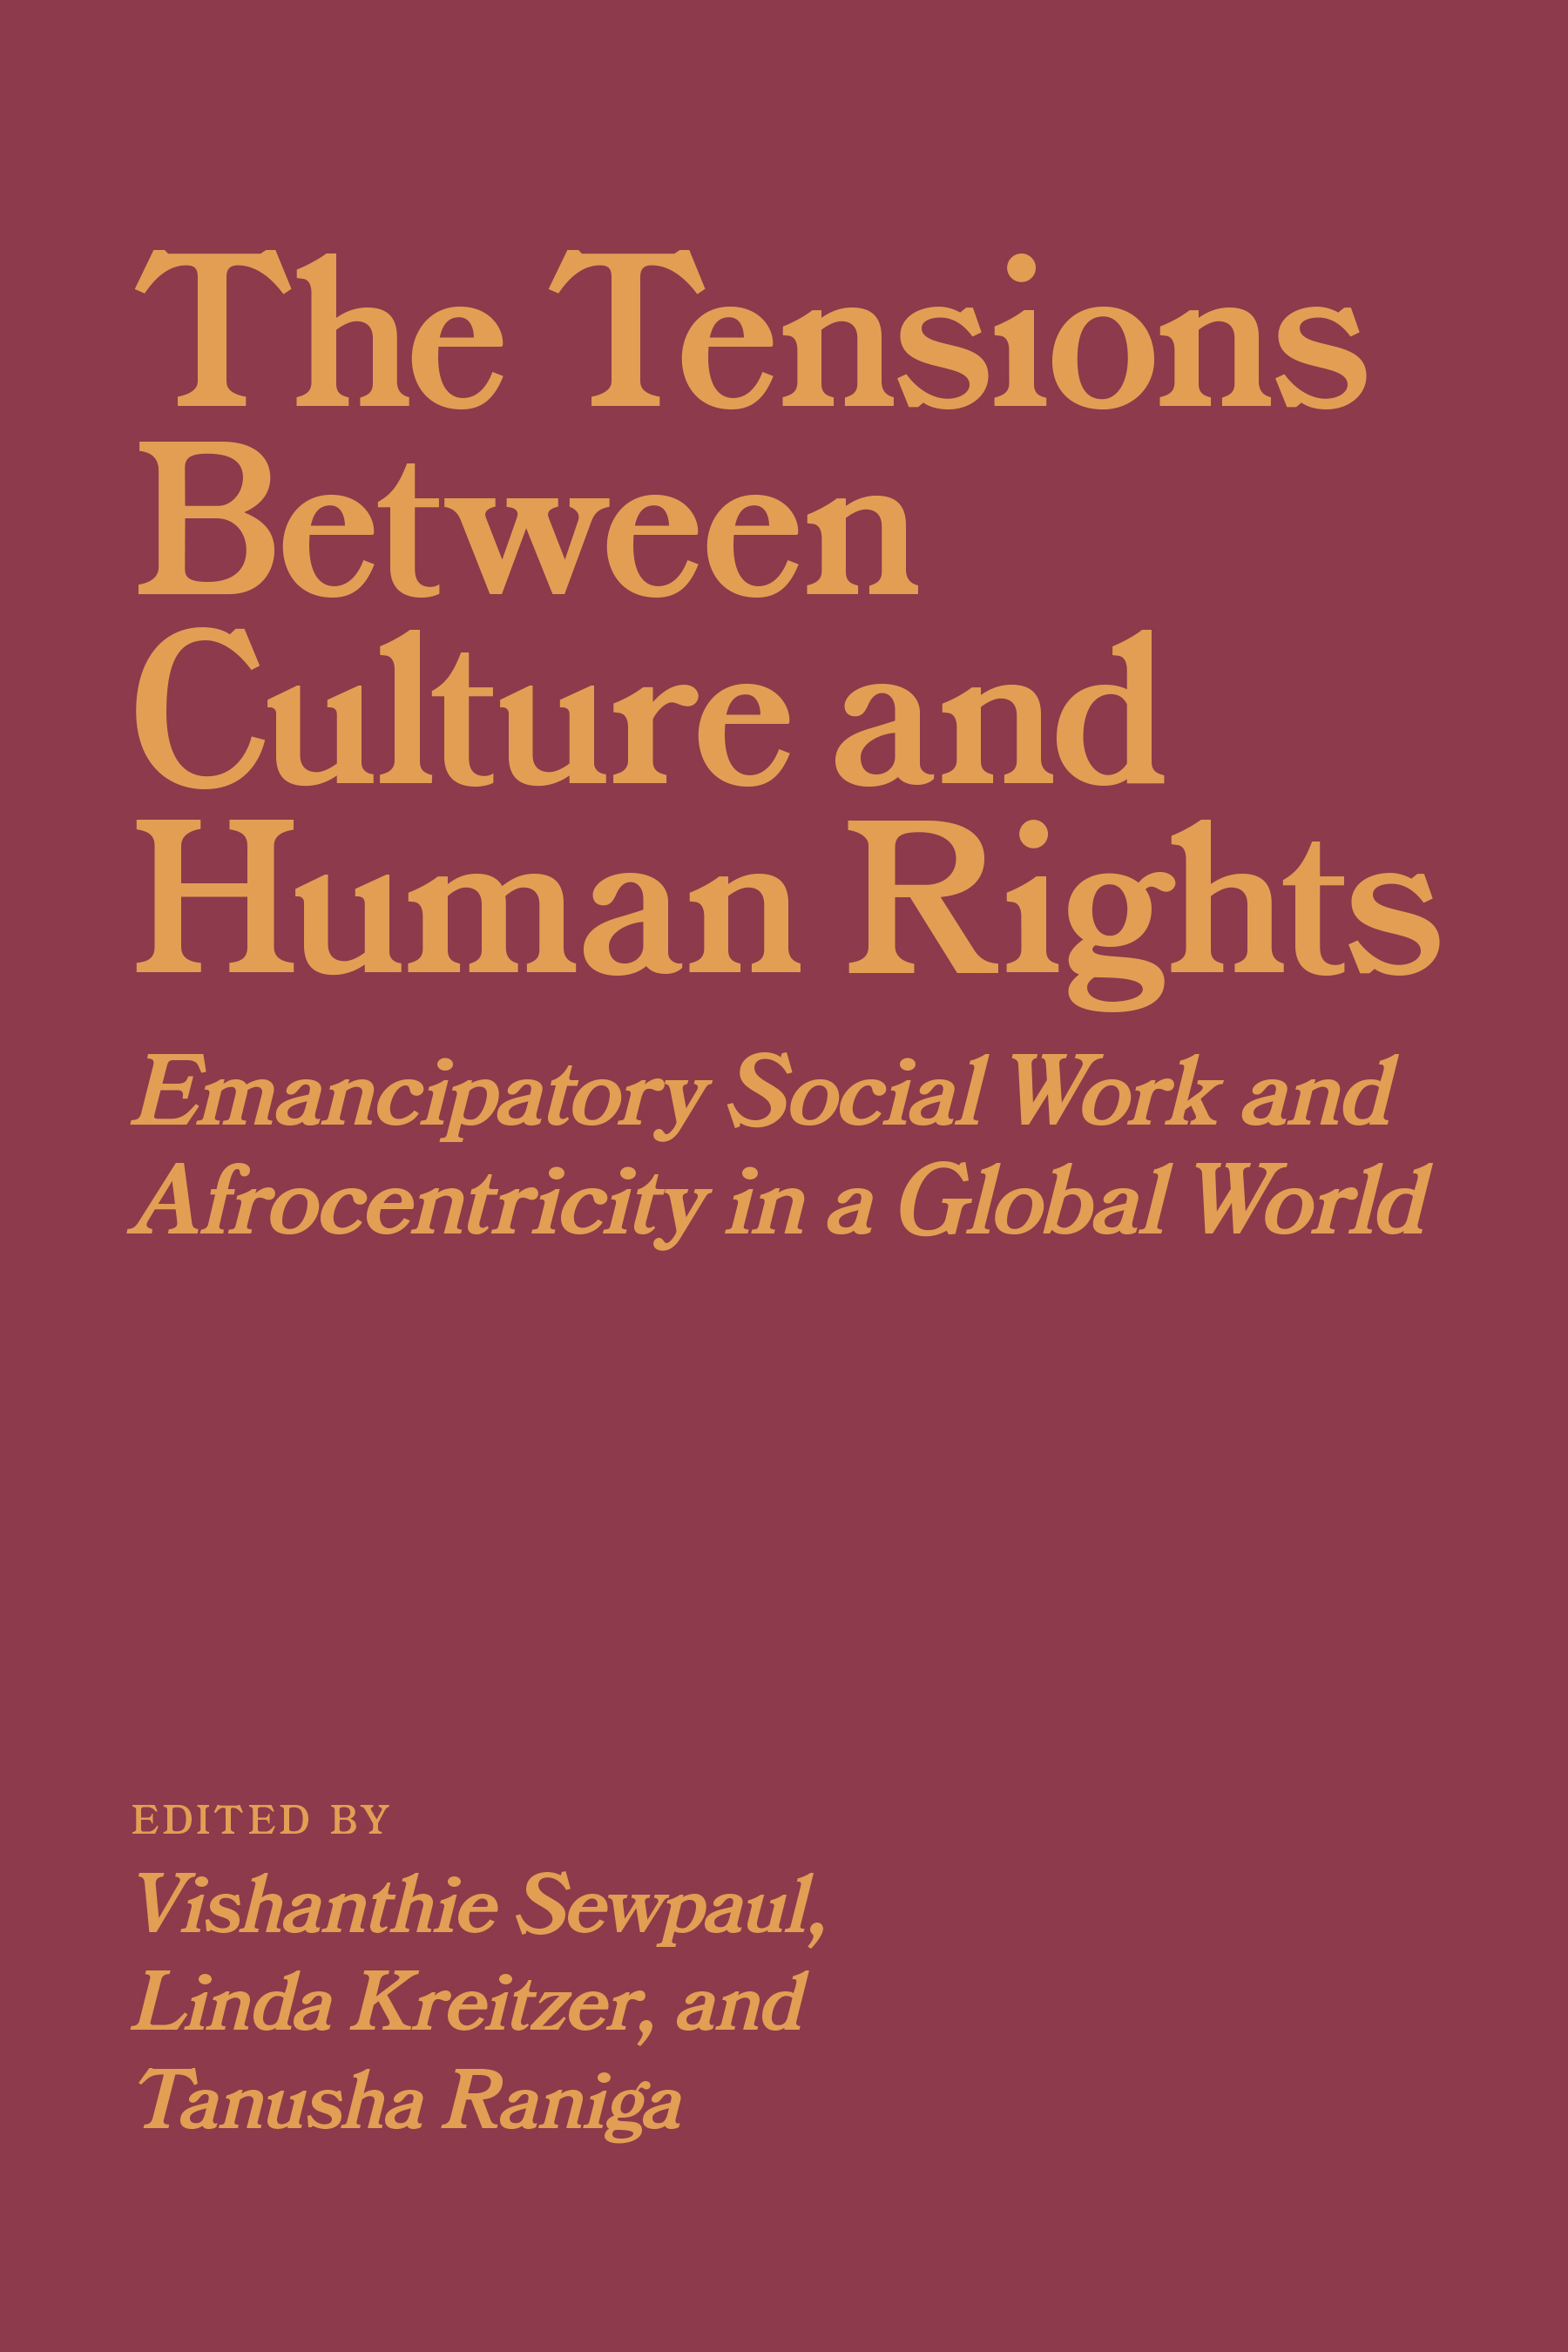 Book Cover Image for: Tensions between Culture and Human Rights